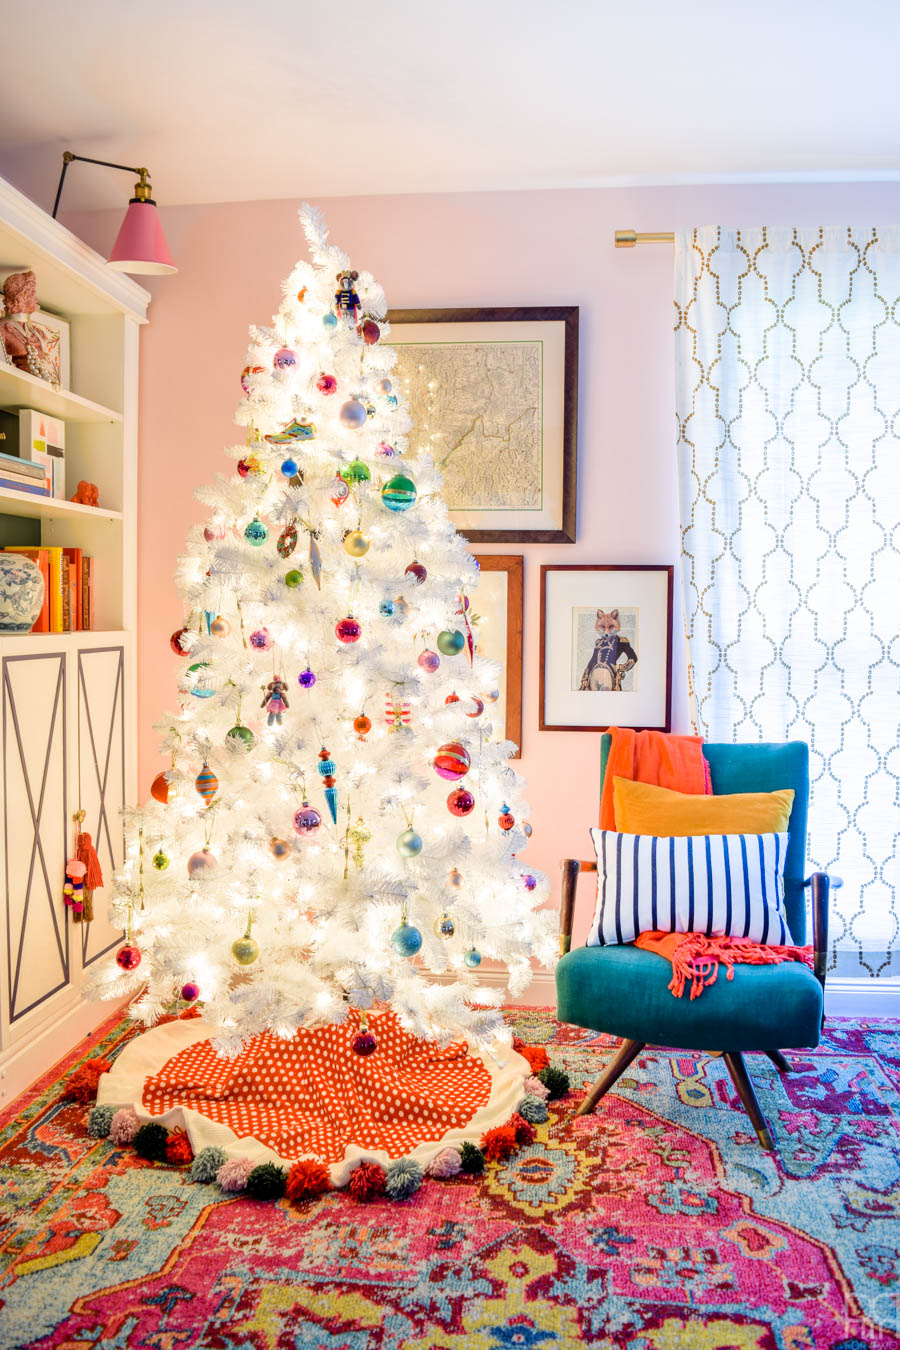 A Retro White Christmas Tree is all you need to display your colourful ornaments and more. We got ours at Canadian Tire and love it!